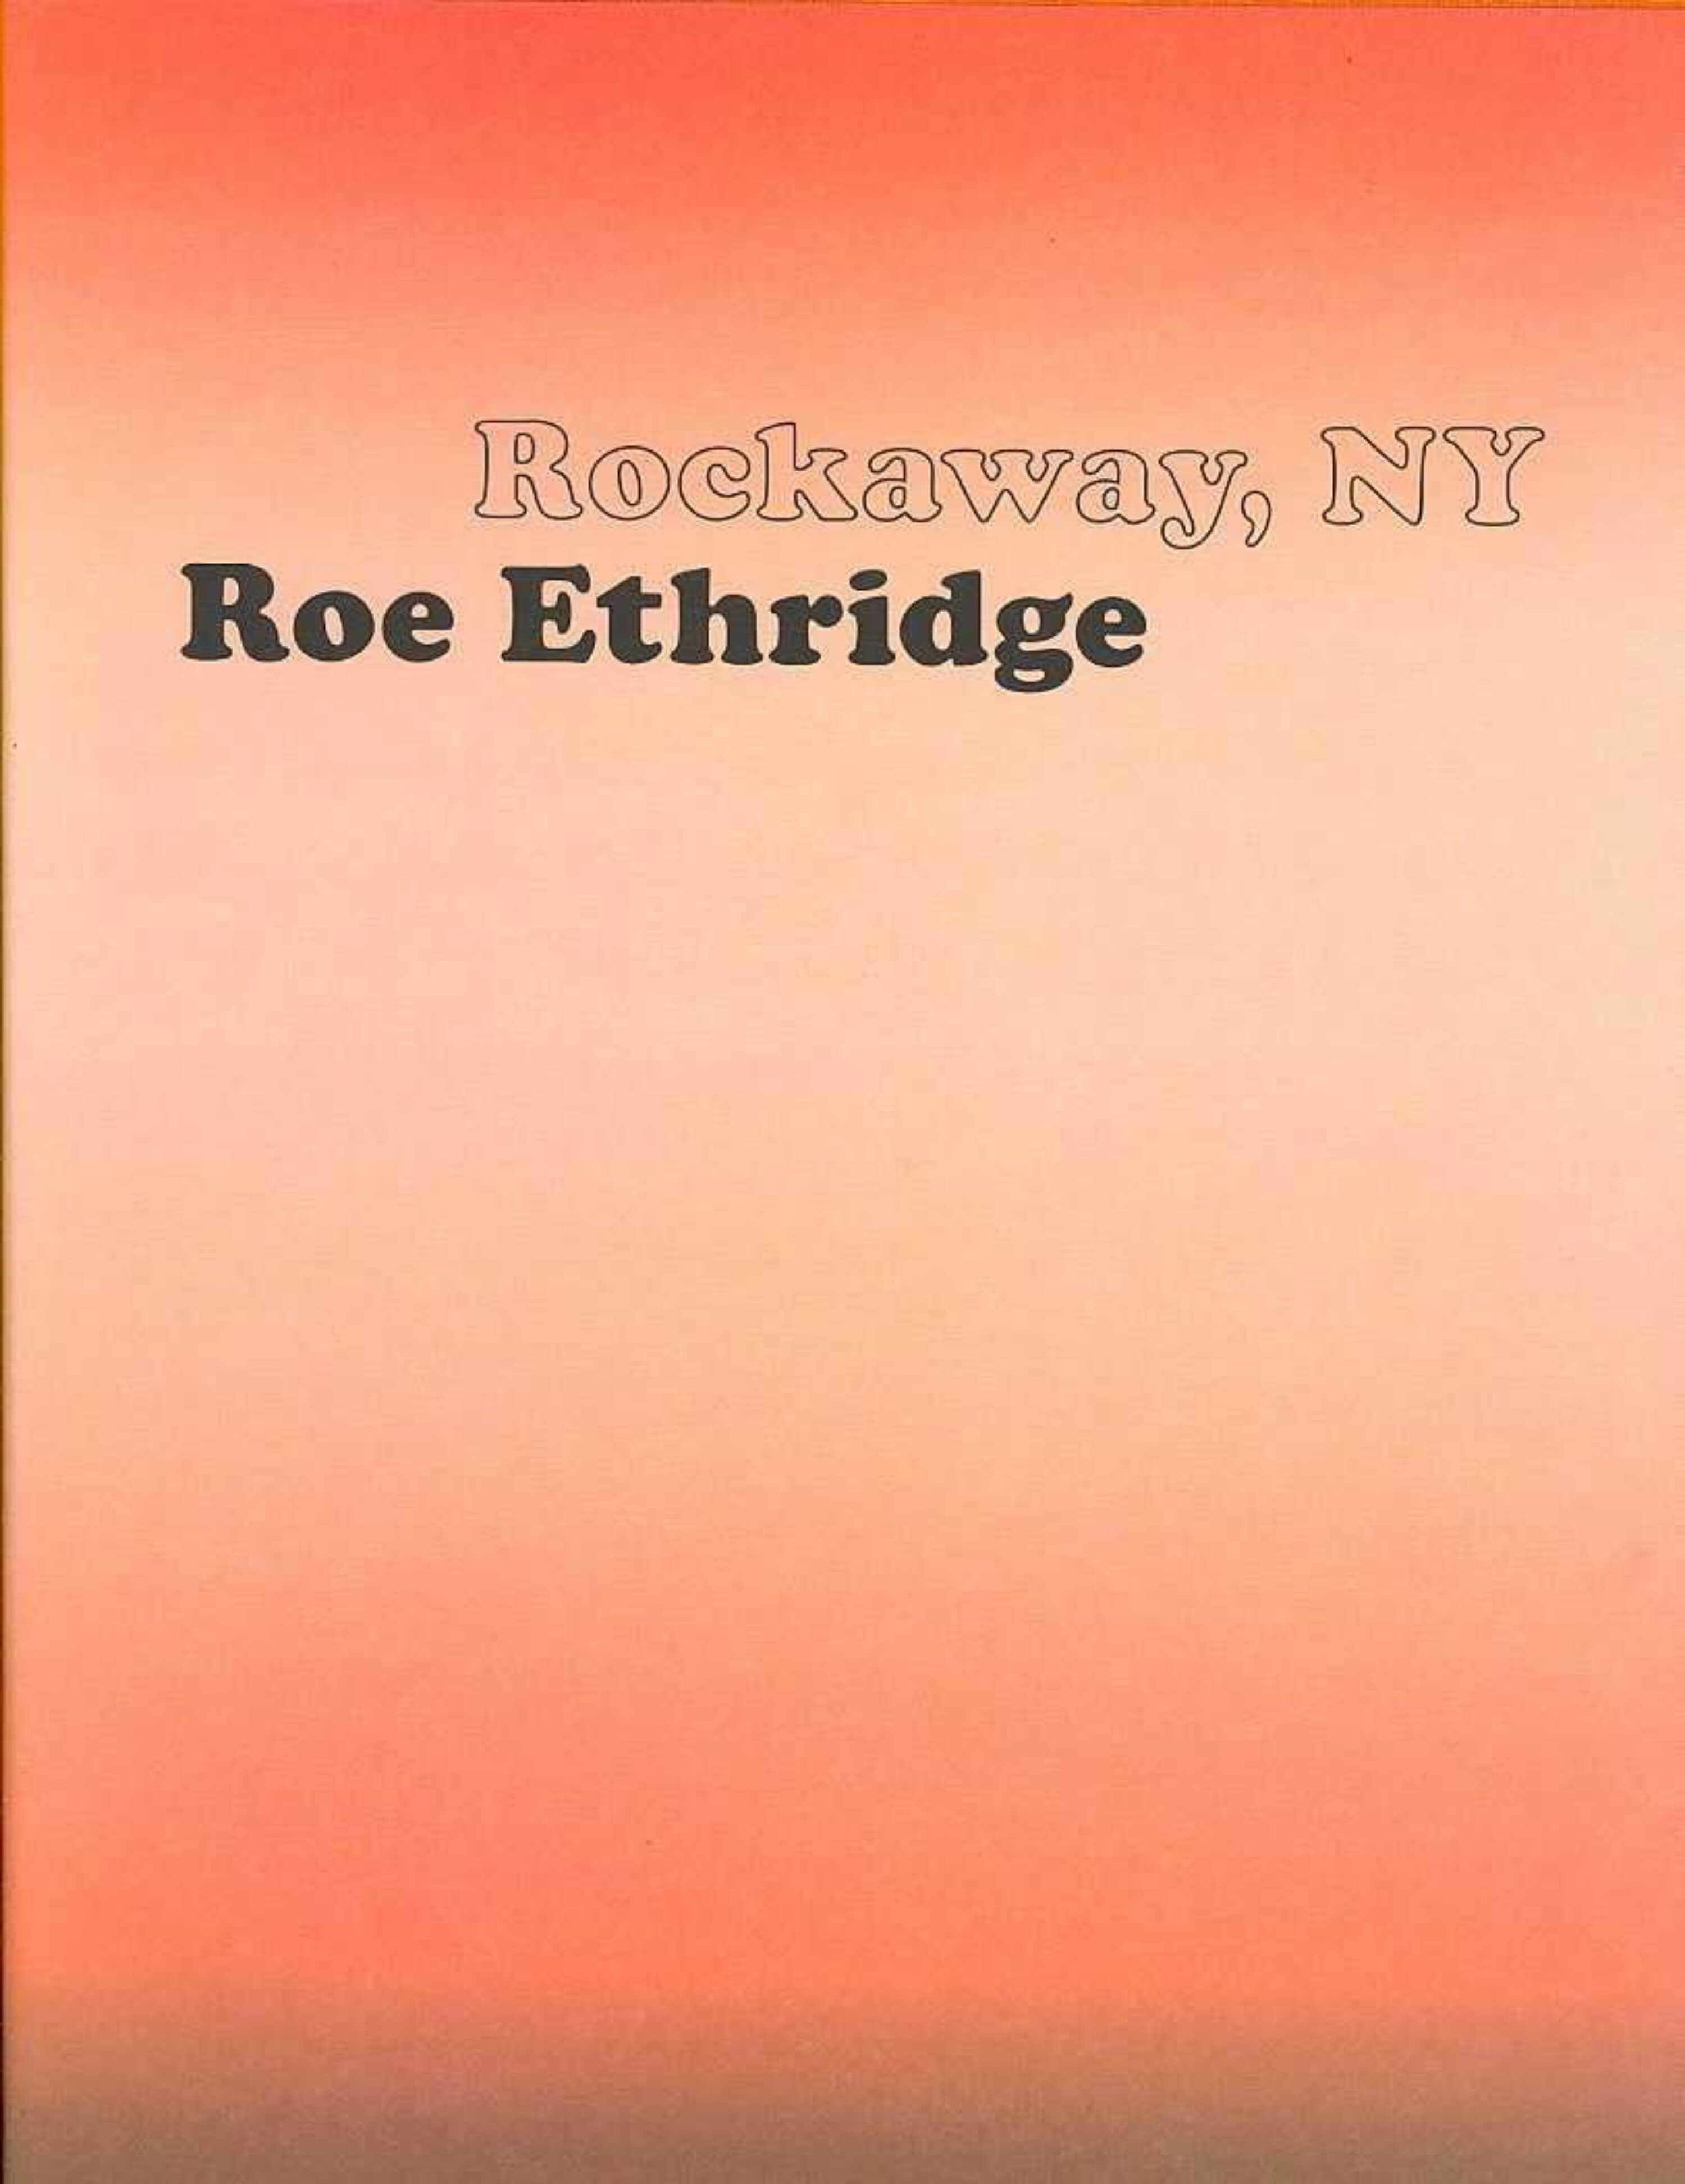 Image of the front cover of Rockaway